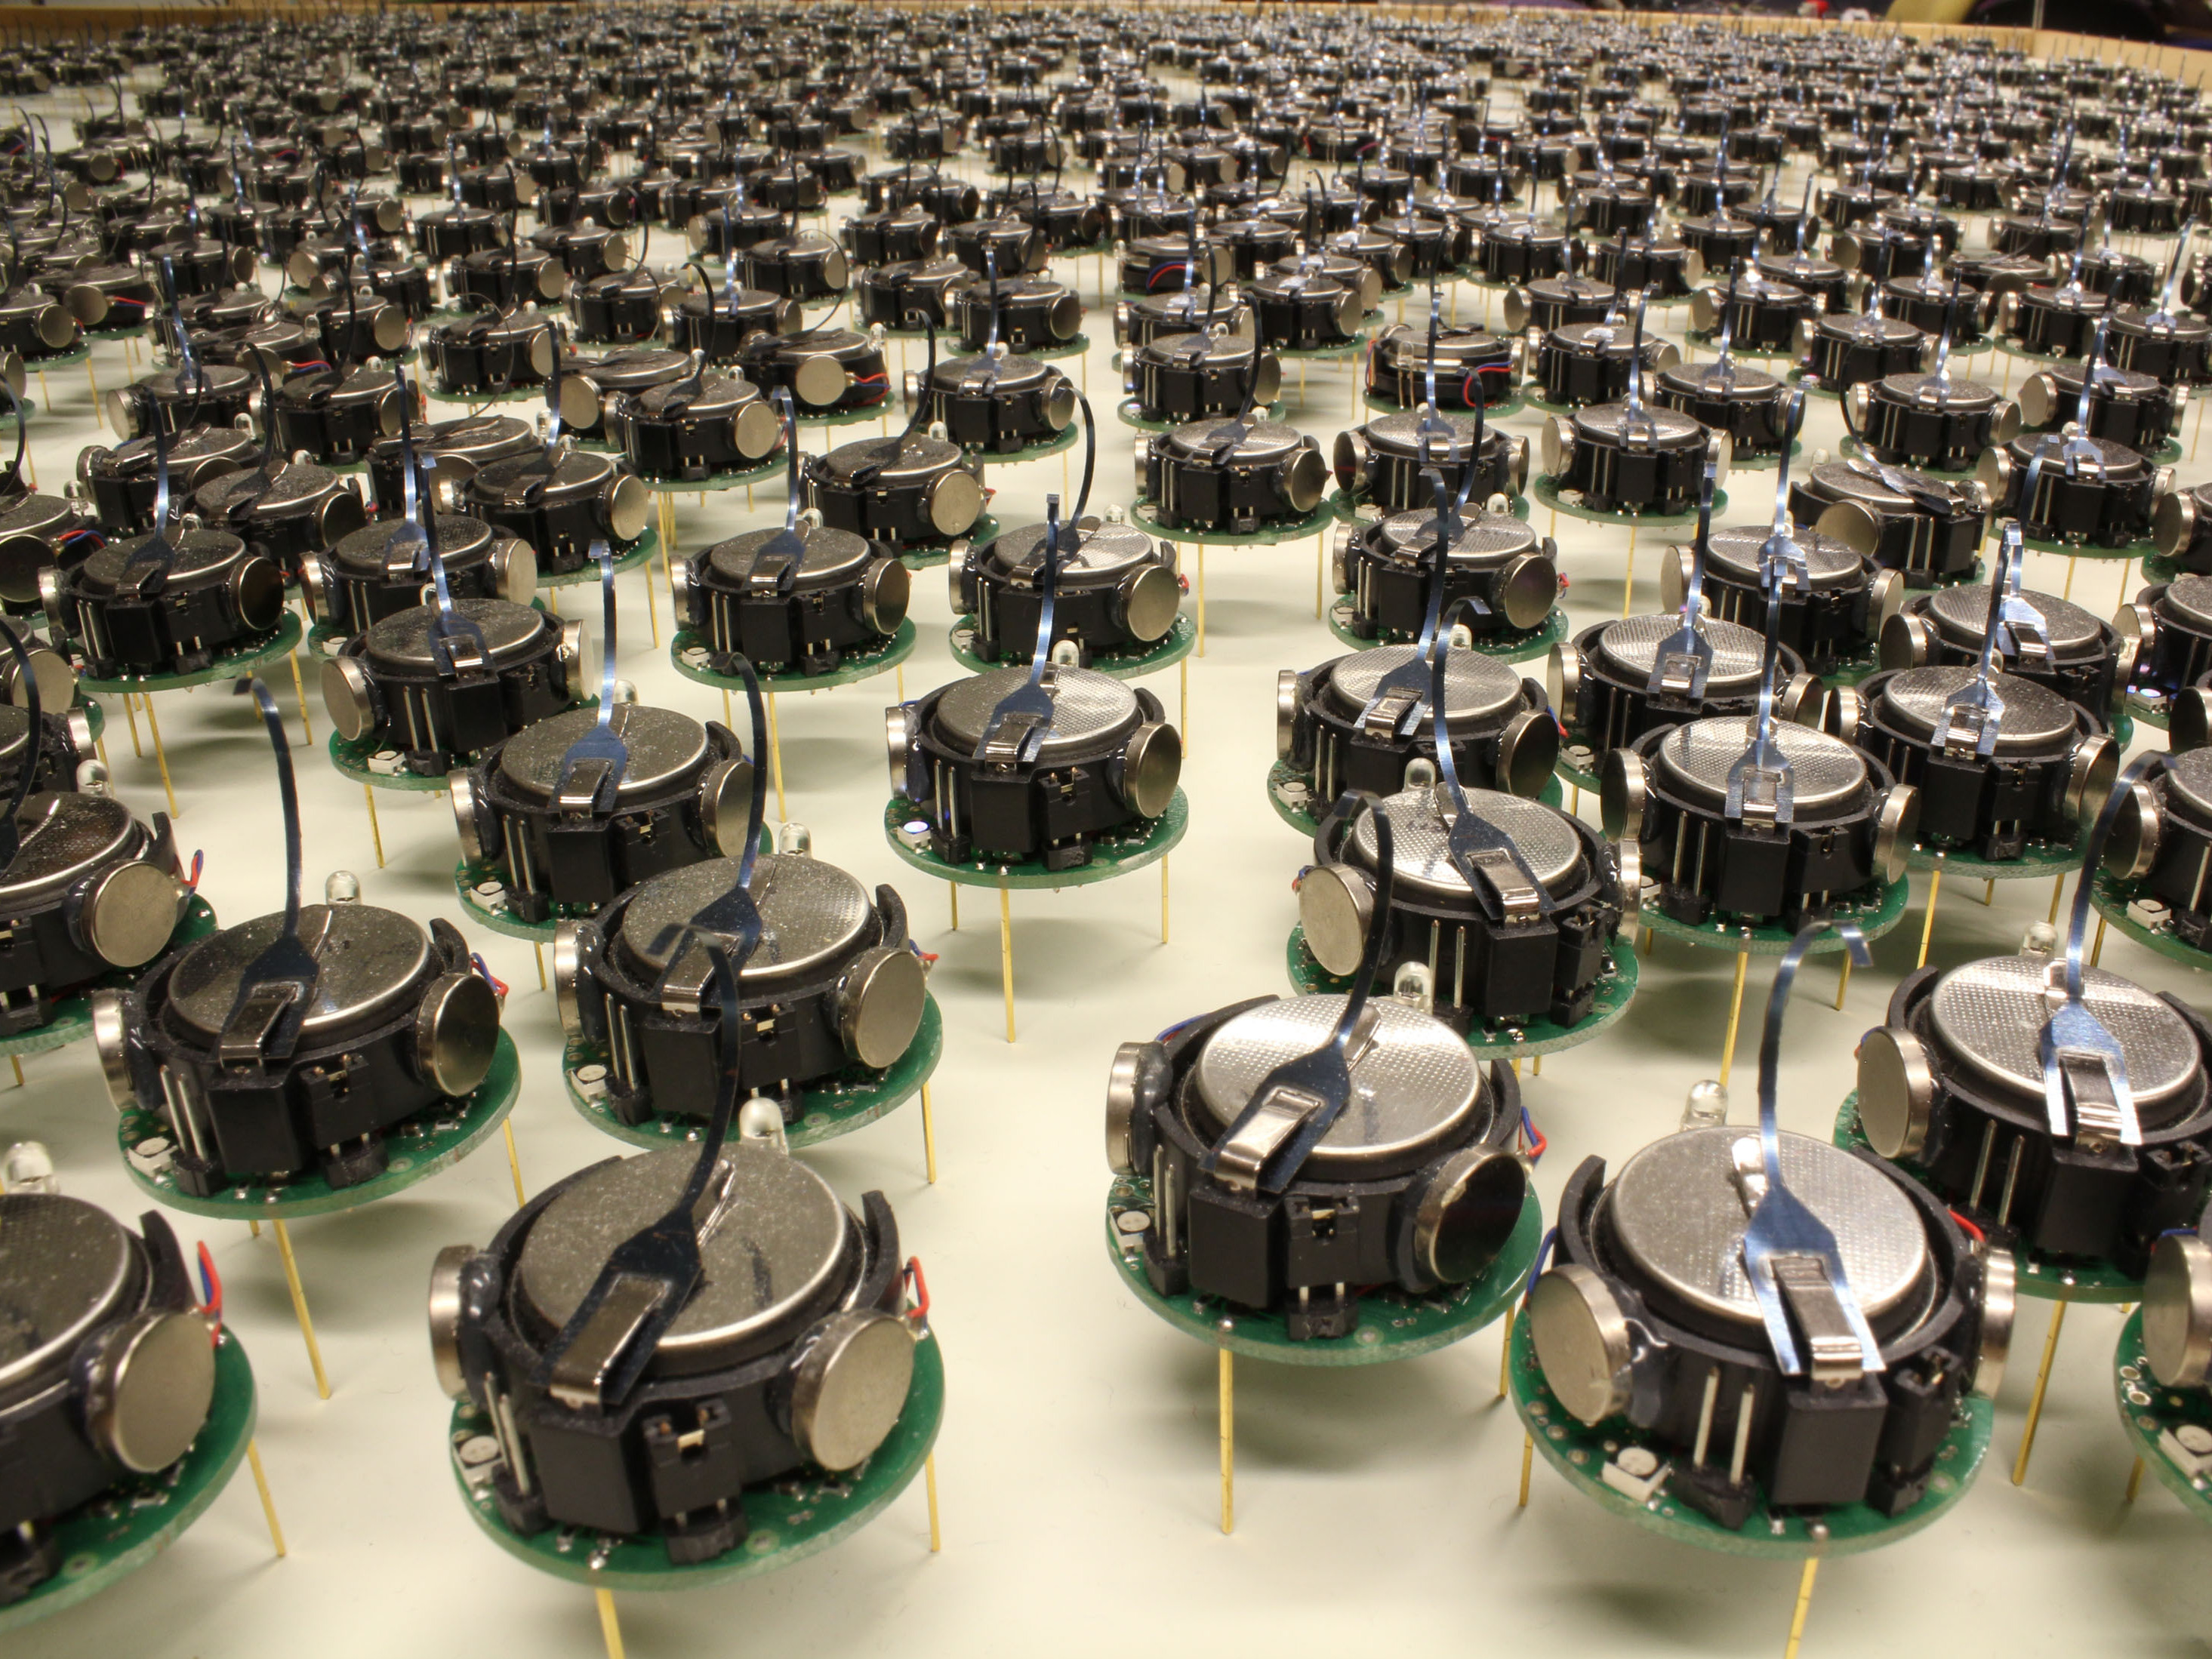 Do Not Fear This Giant Robot Swarm